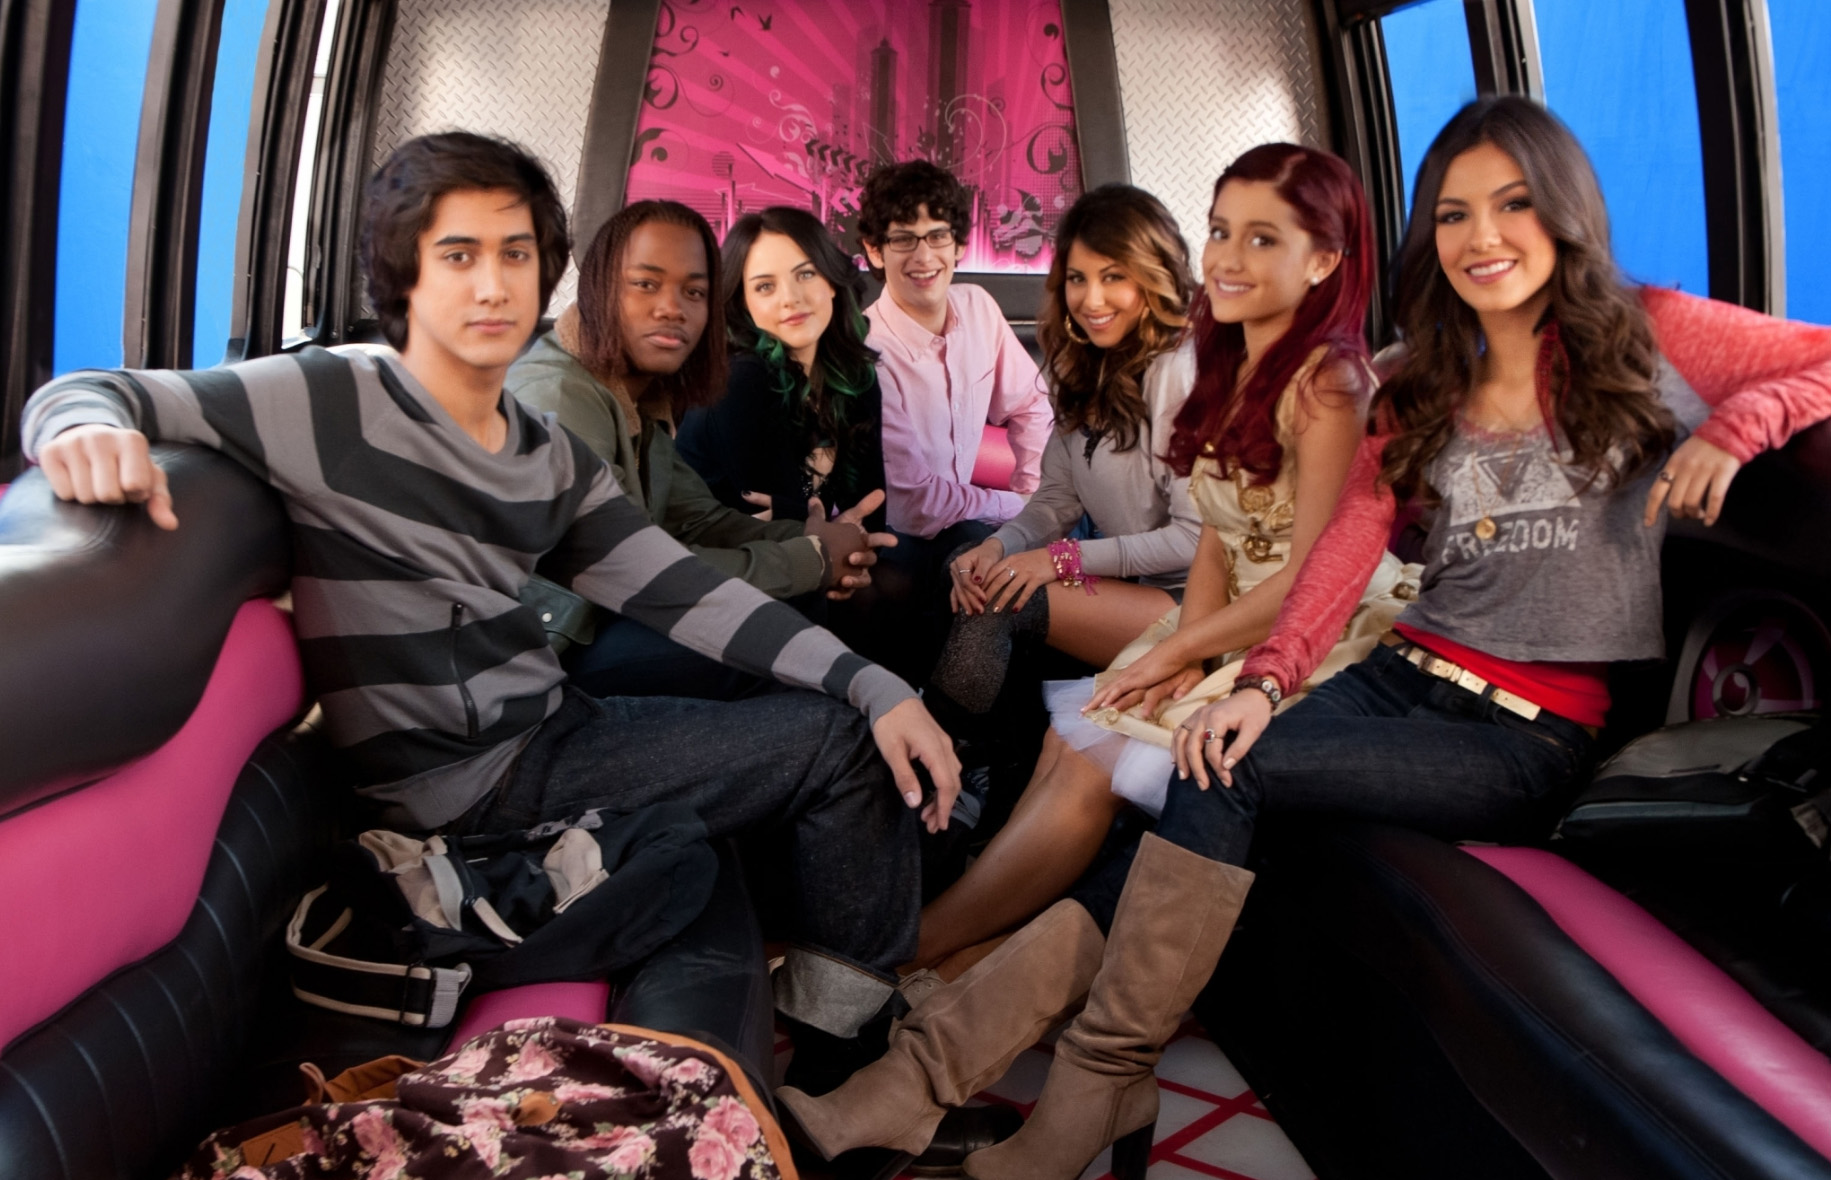 Watch for free: Watch Victorious Se4 Ep Season 4 Episode 4